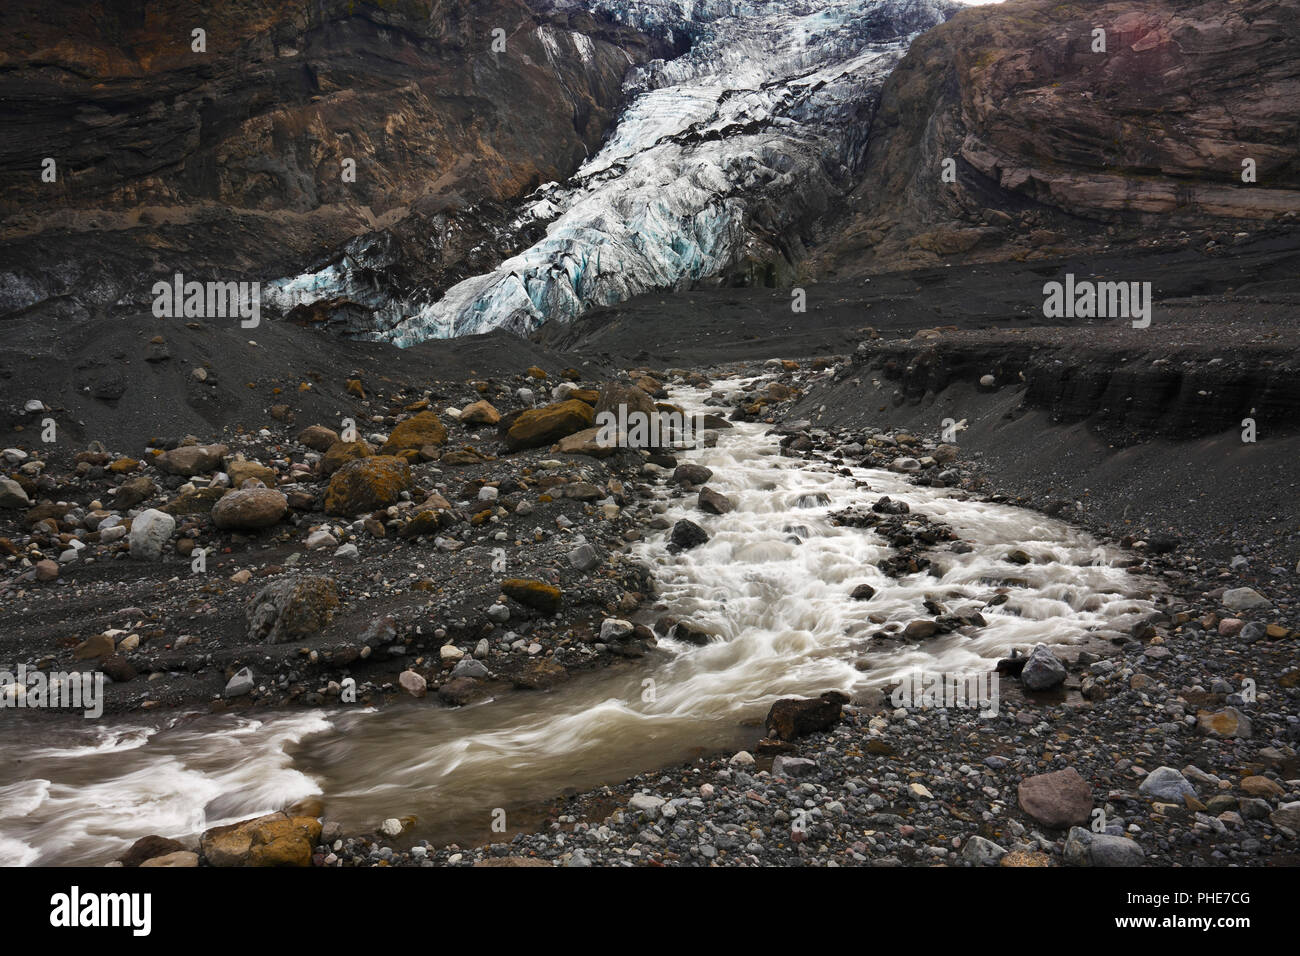 Gígjökull glacier after 2010 eruption of Eyjafjallajökull volcano, Iceland - Stock Image